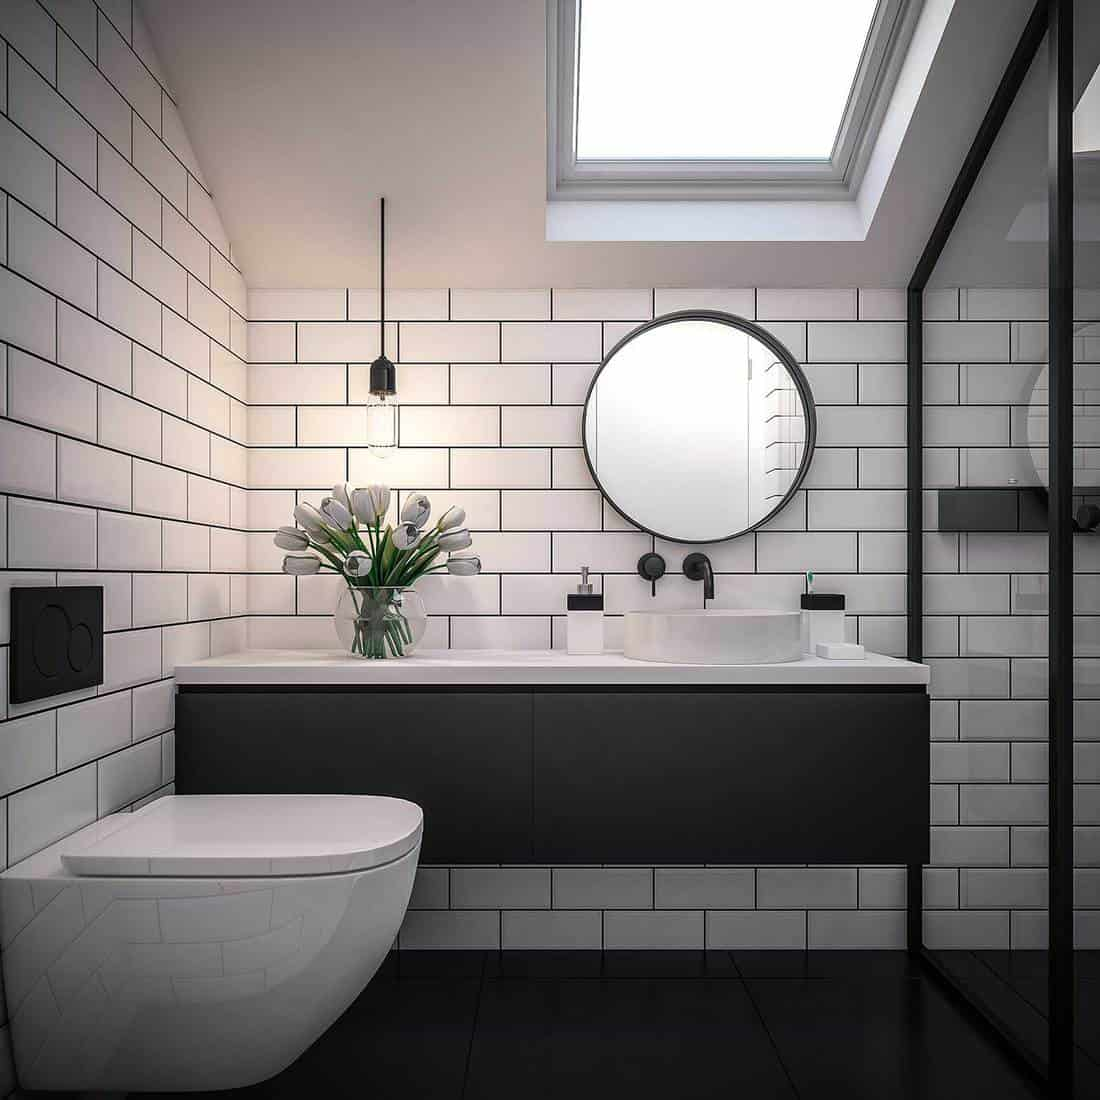 Attic bathroom interior with shower, sink, toilet and brick walls